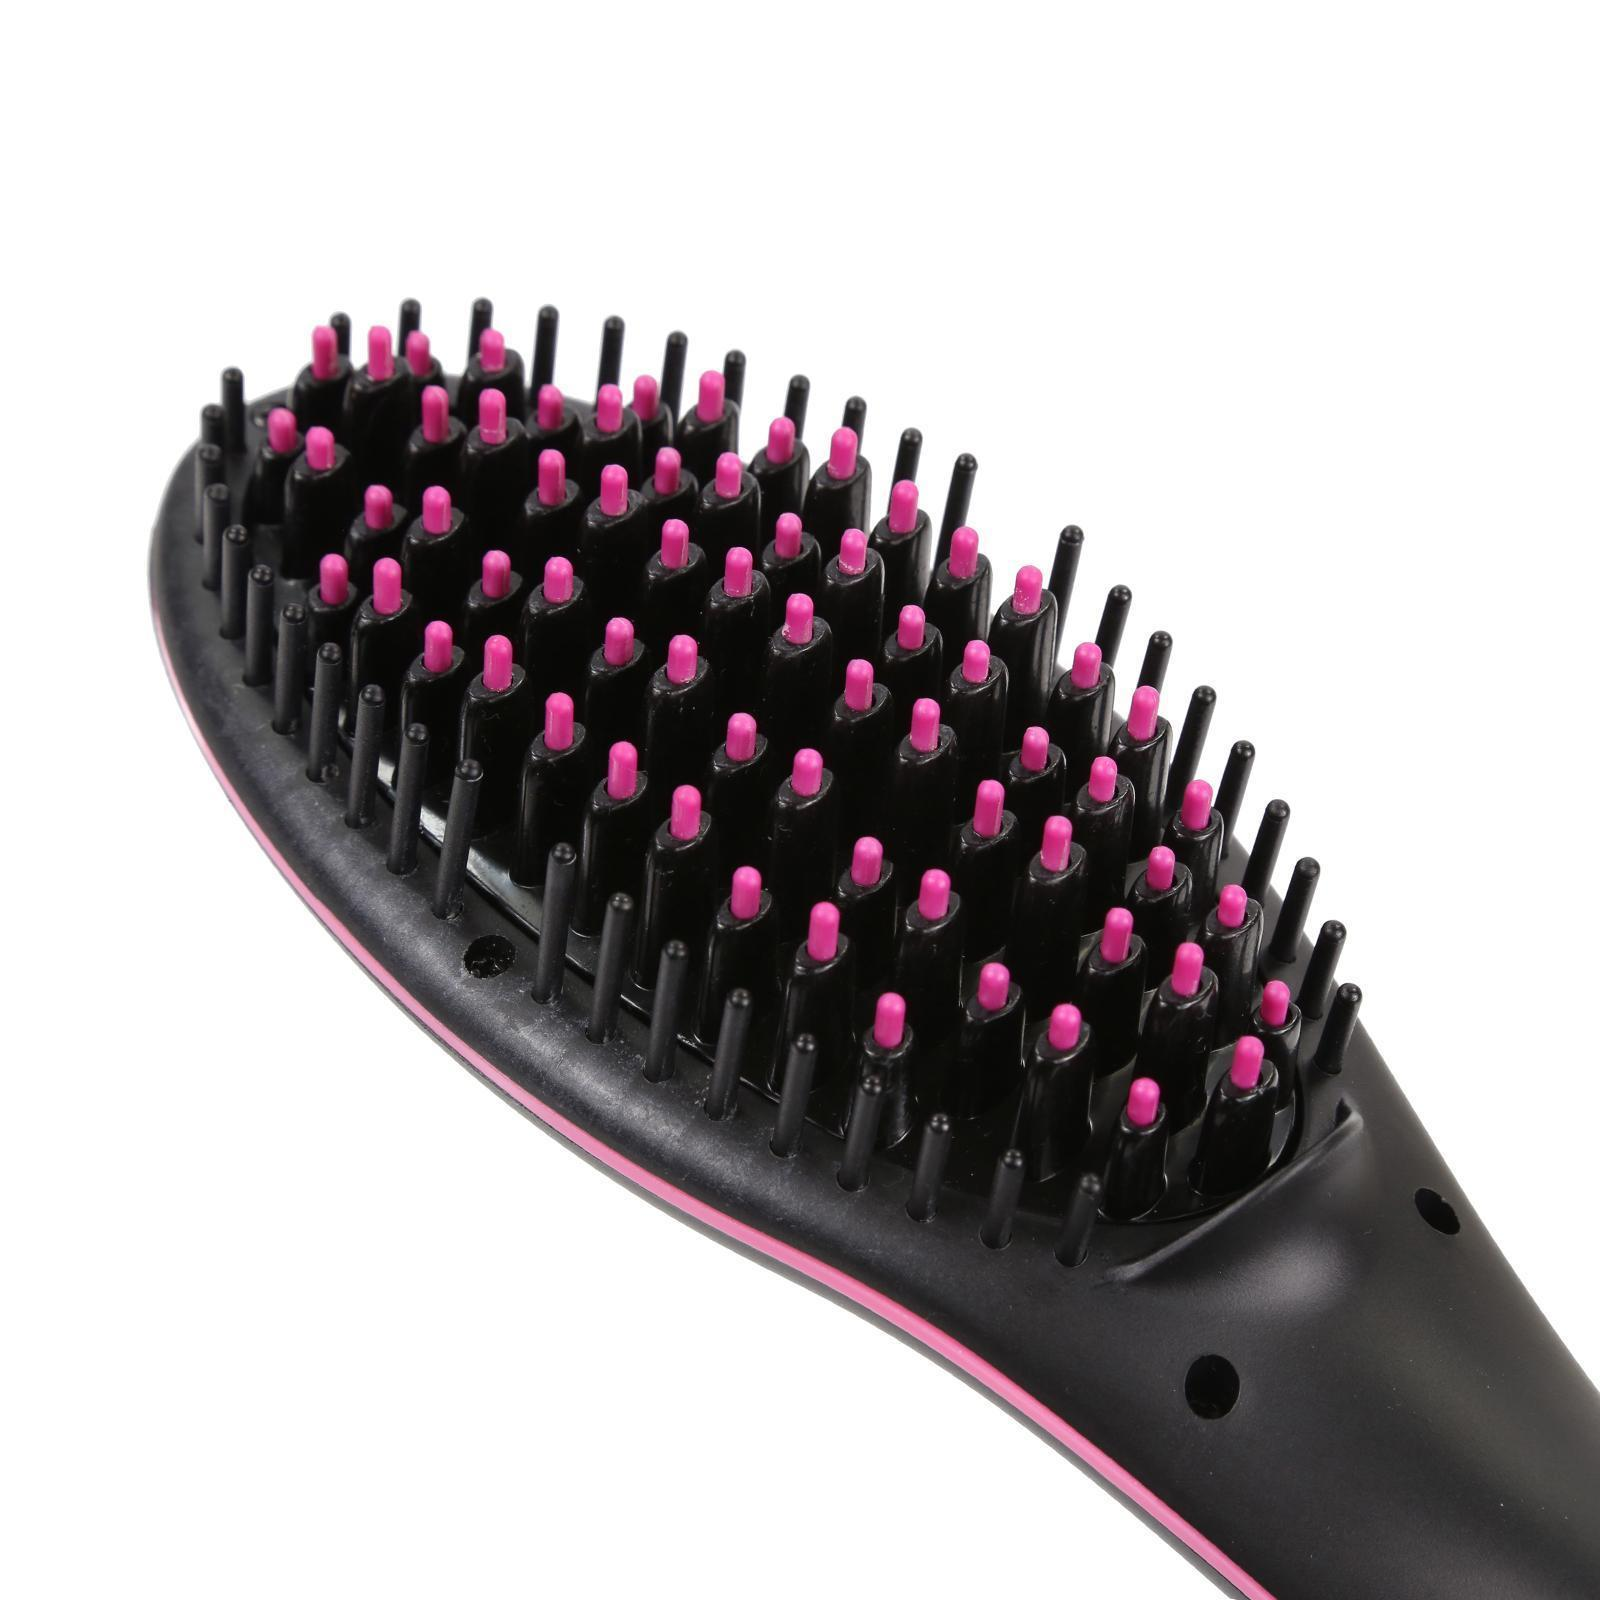 LUV-Hair-Straightening-Brush-Anti-Static-Technology-Anti-Scald-LCD-Display thumbnail 8